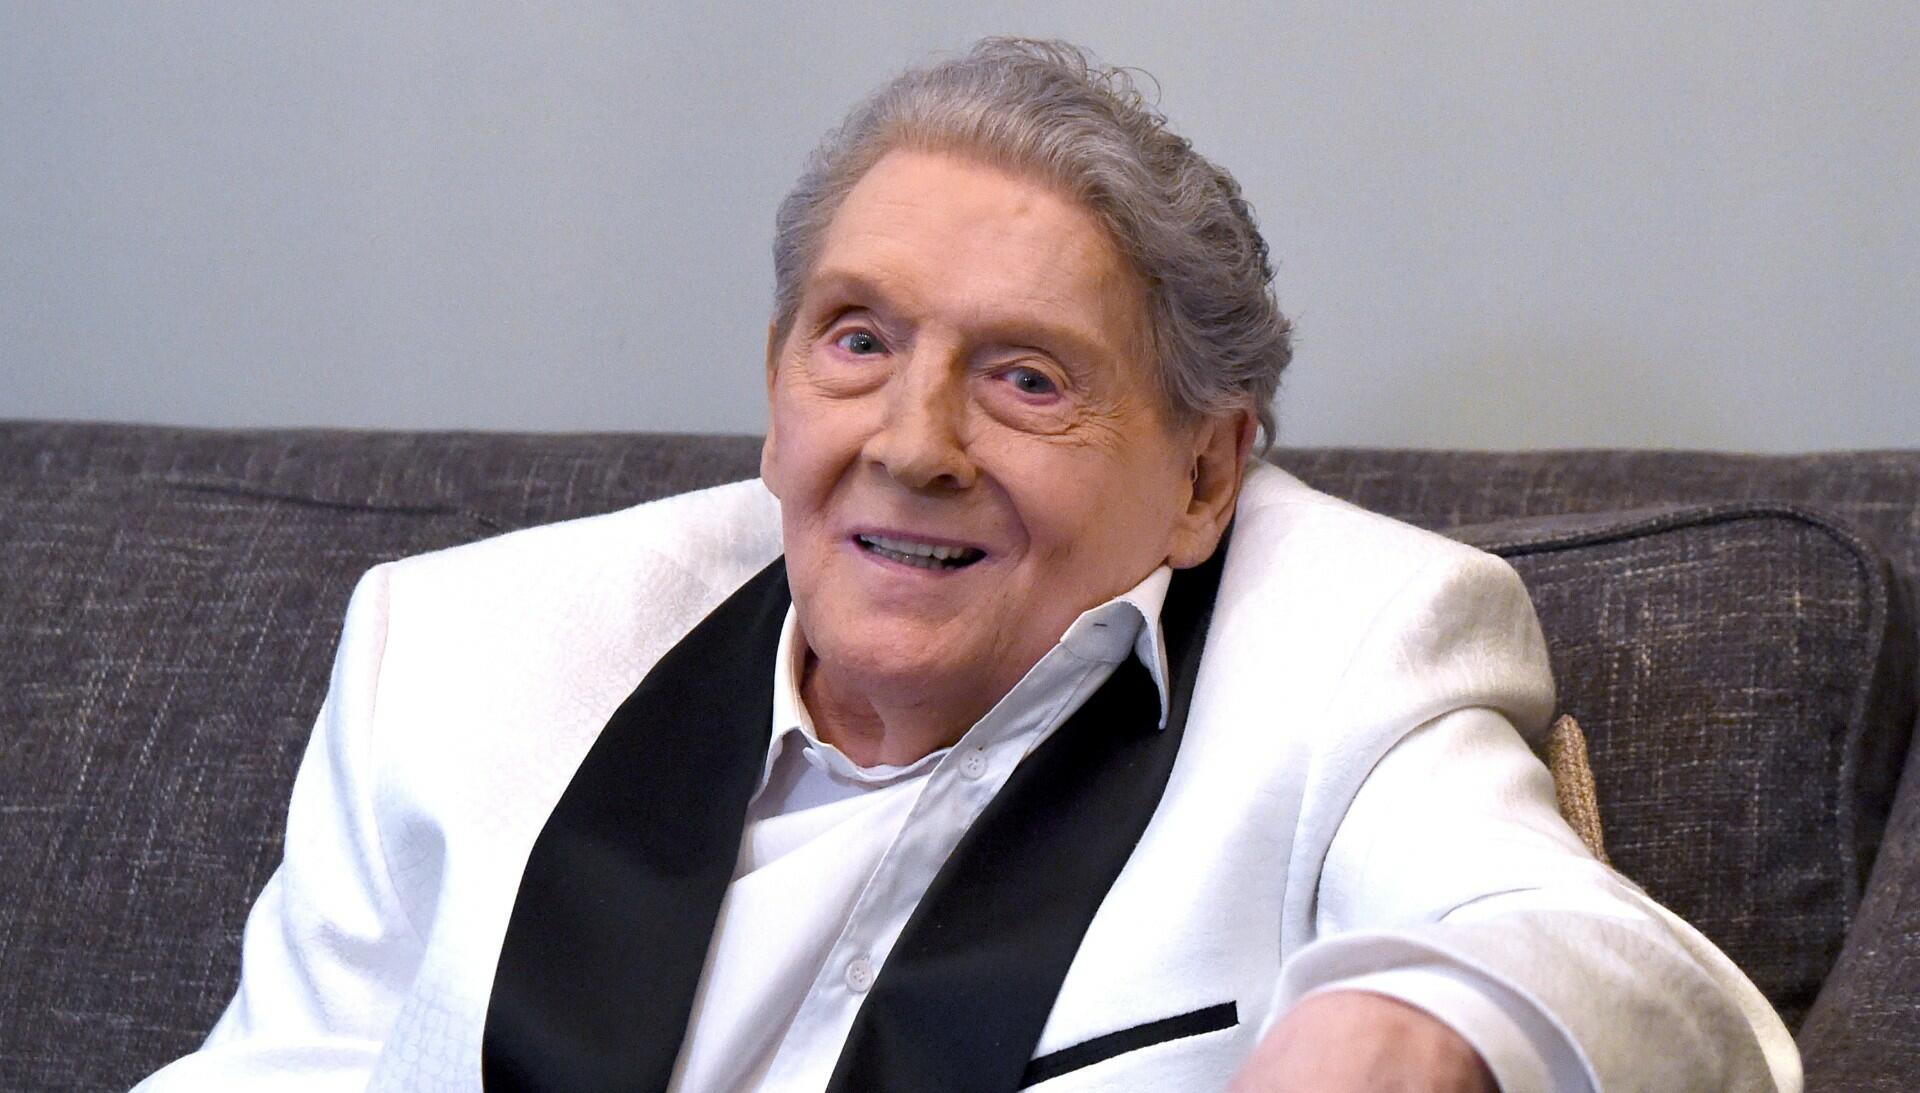 Jerry Lee Lewis Returns To Music After Miraculous Stroke Recovery | iHeartRadio